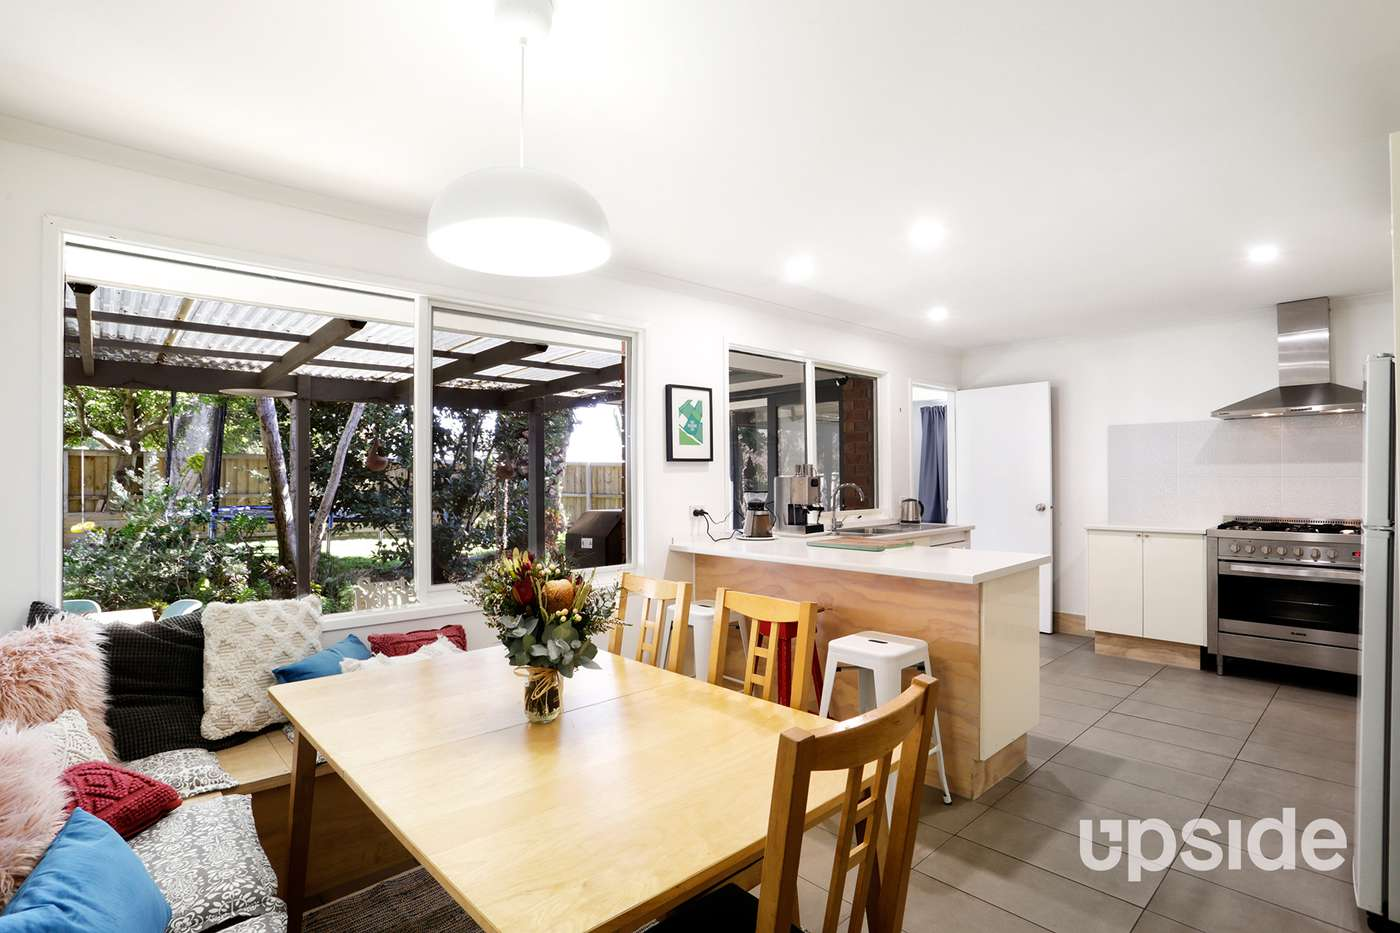 Main view of Homely house listing, 3 Callas Street, Dromana, VIC 3936